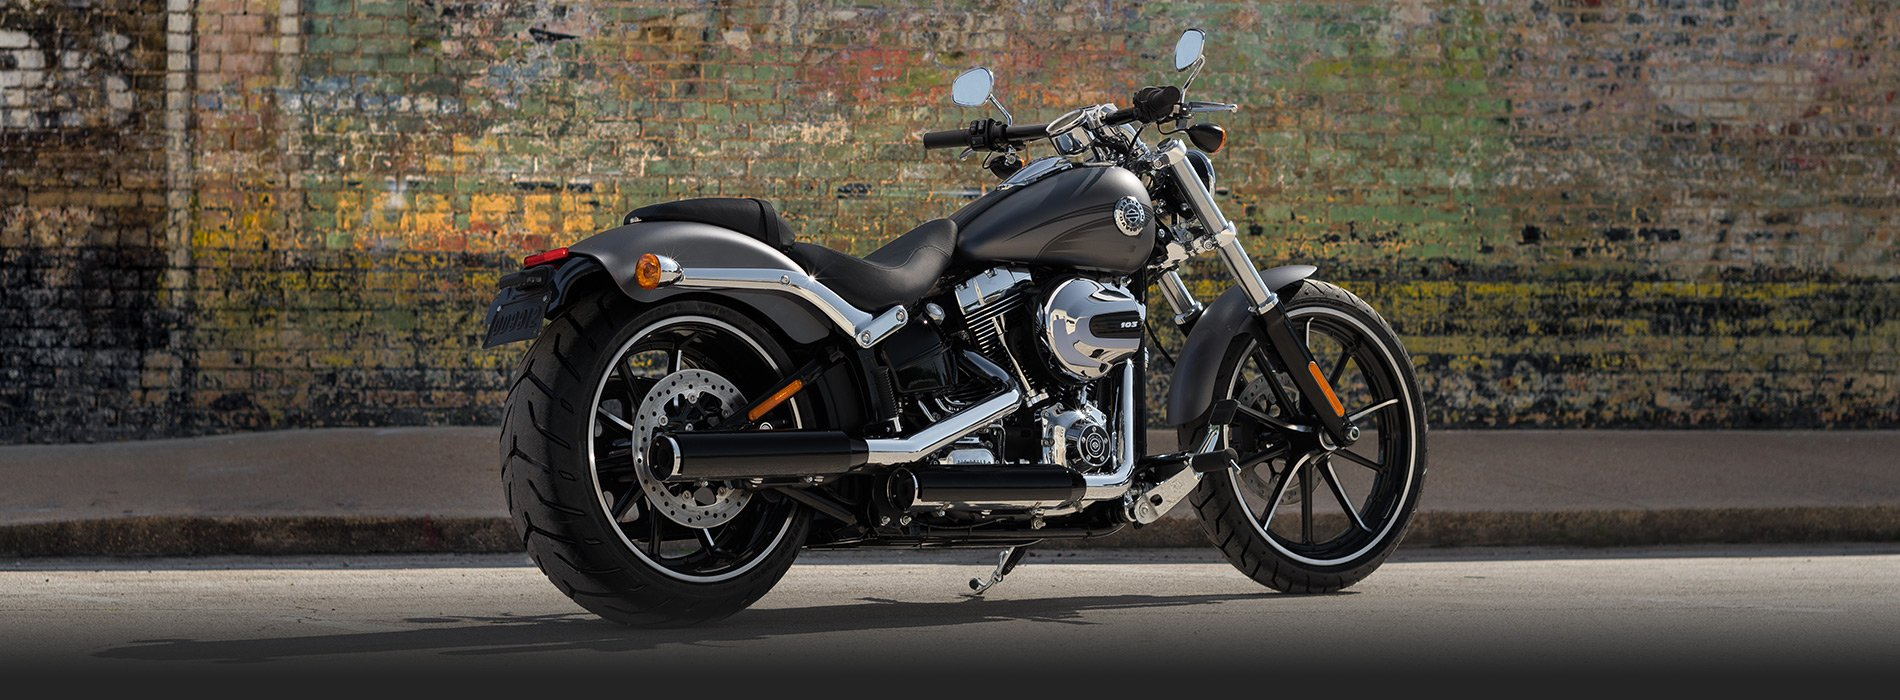 harley davidson harley davidson Harley-davidson® world is a harley-davidson® motorcycle dealer of new and used bikes in oklahoma city, oklahoma, and near edmond, yukon, el reno, mustang and piedmont we also offer service, parts and accessories.